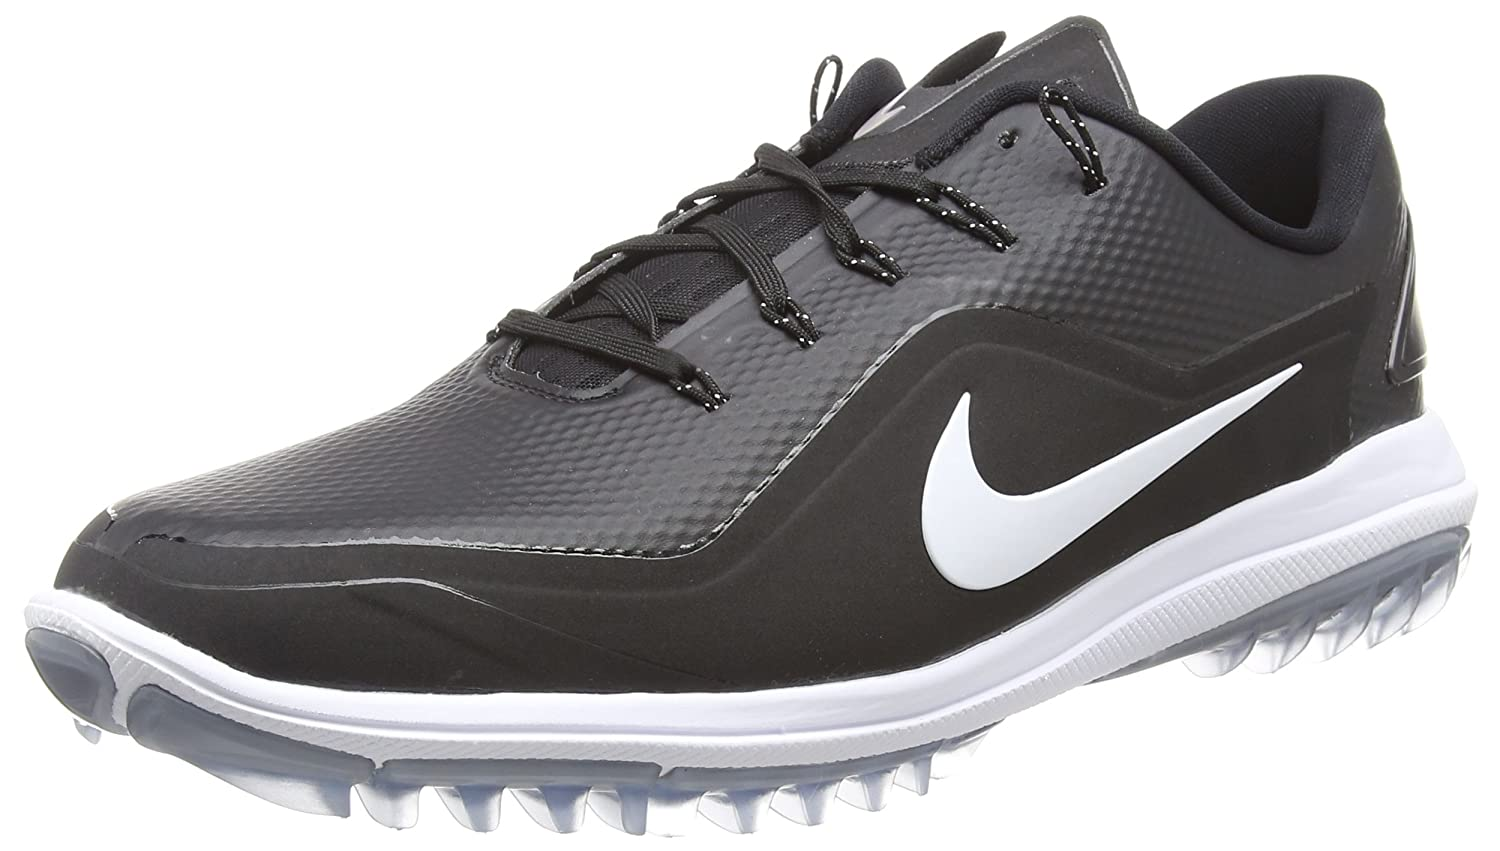 premium selection 881fd f0eaf Amazon.com   Nike Men s Lunar Control Vapor 2 Golf Shoes, Black White Cool  Gray, 11.5 M US   Golf